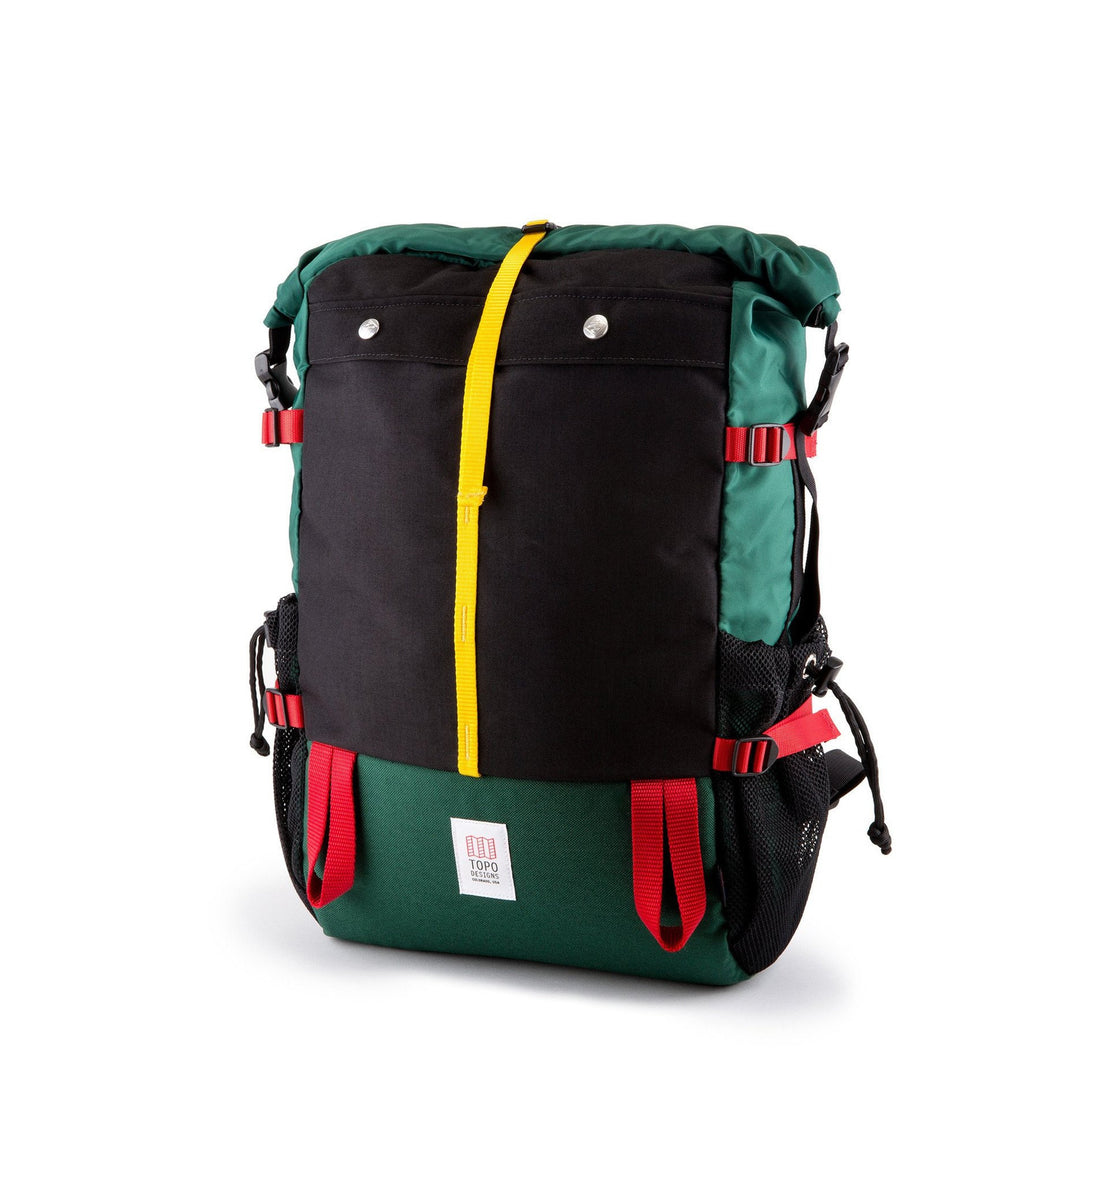 Topo Designs Mountain Roll Top - Bags/Luggage - Iron and Resin